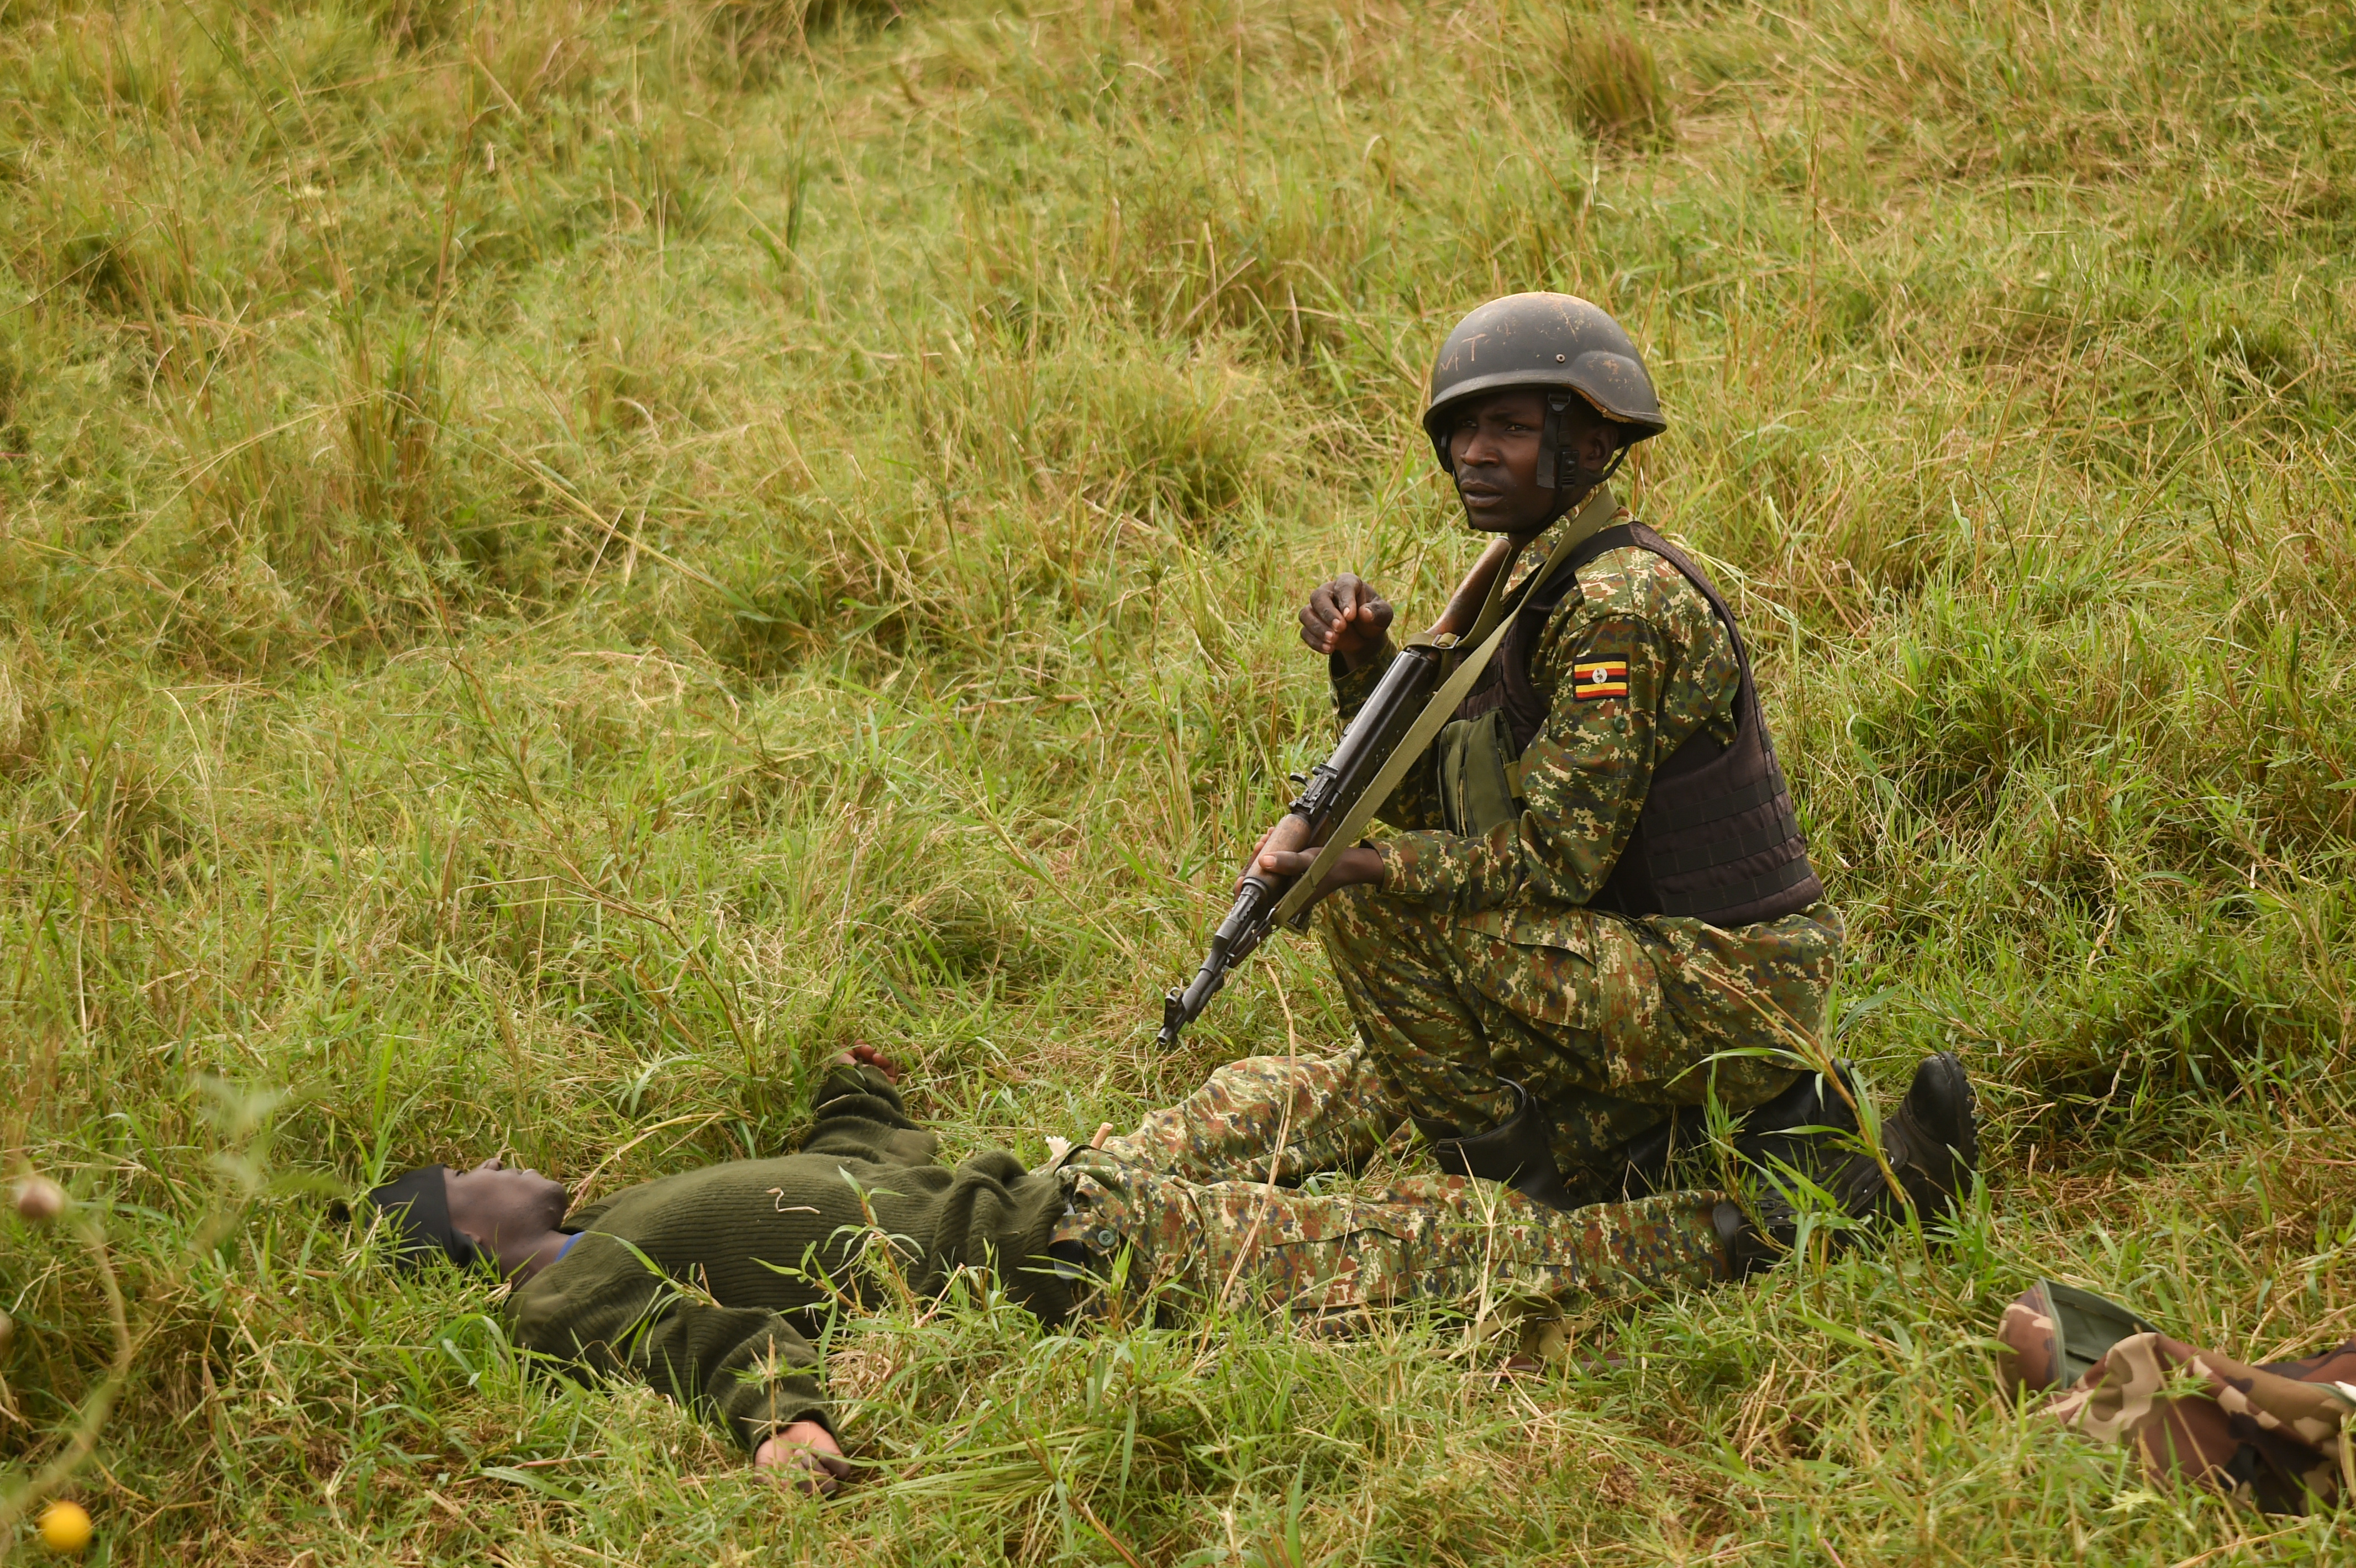 A Uganda People's Defense Force (UPDF) soldier with Ugandan Battle Group 22, scans the area before applying a tourniquet during a medical exercise at Camp Singo, Uganda, March 3, 2017. Up to 25 percent of deaths on the battlefield are preventable. Administering swift medical attention on the battlefield and in transport greatly improves the survival rate of casualties. (U.S. Air National Guard photo by Staff Sgt. Penny Snoozy)